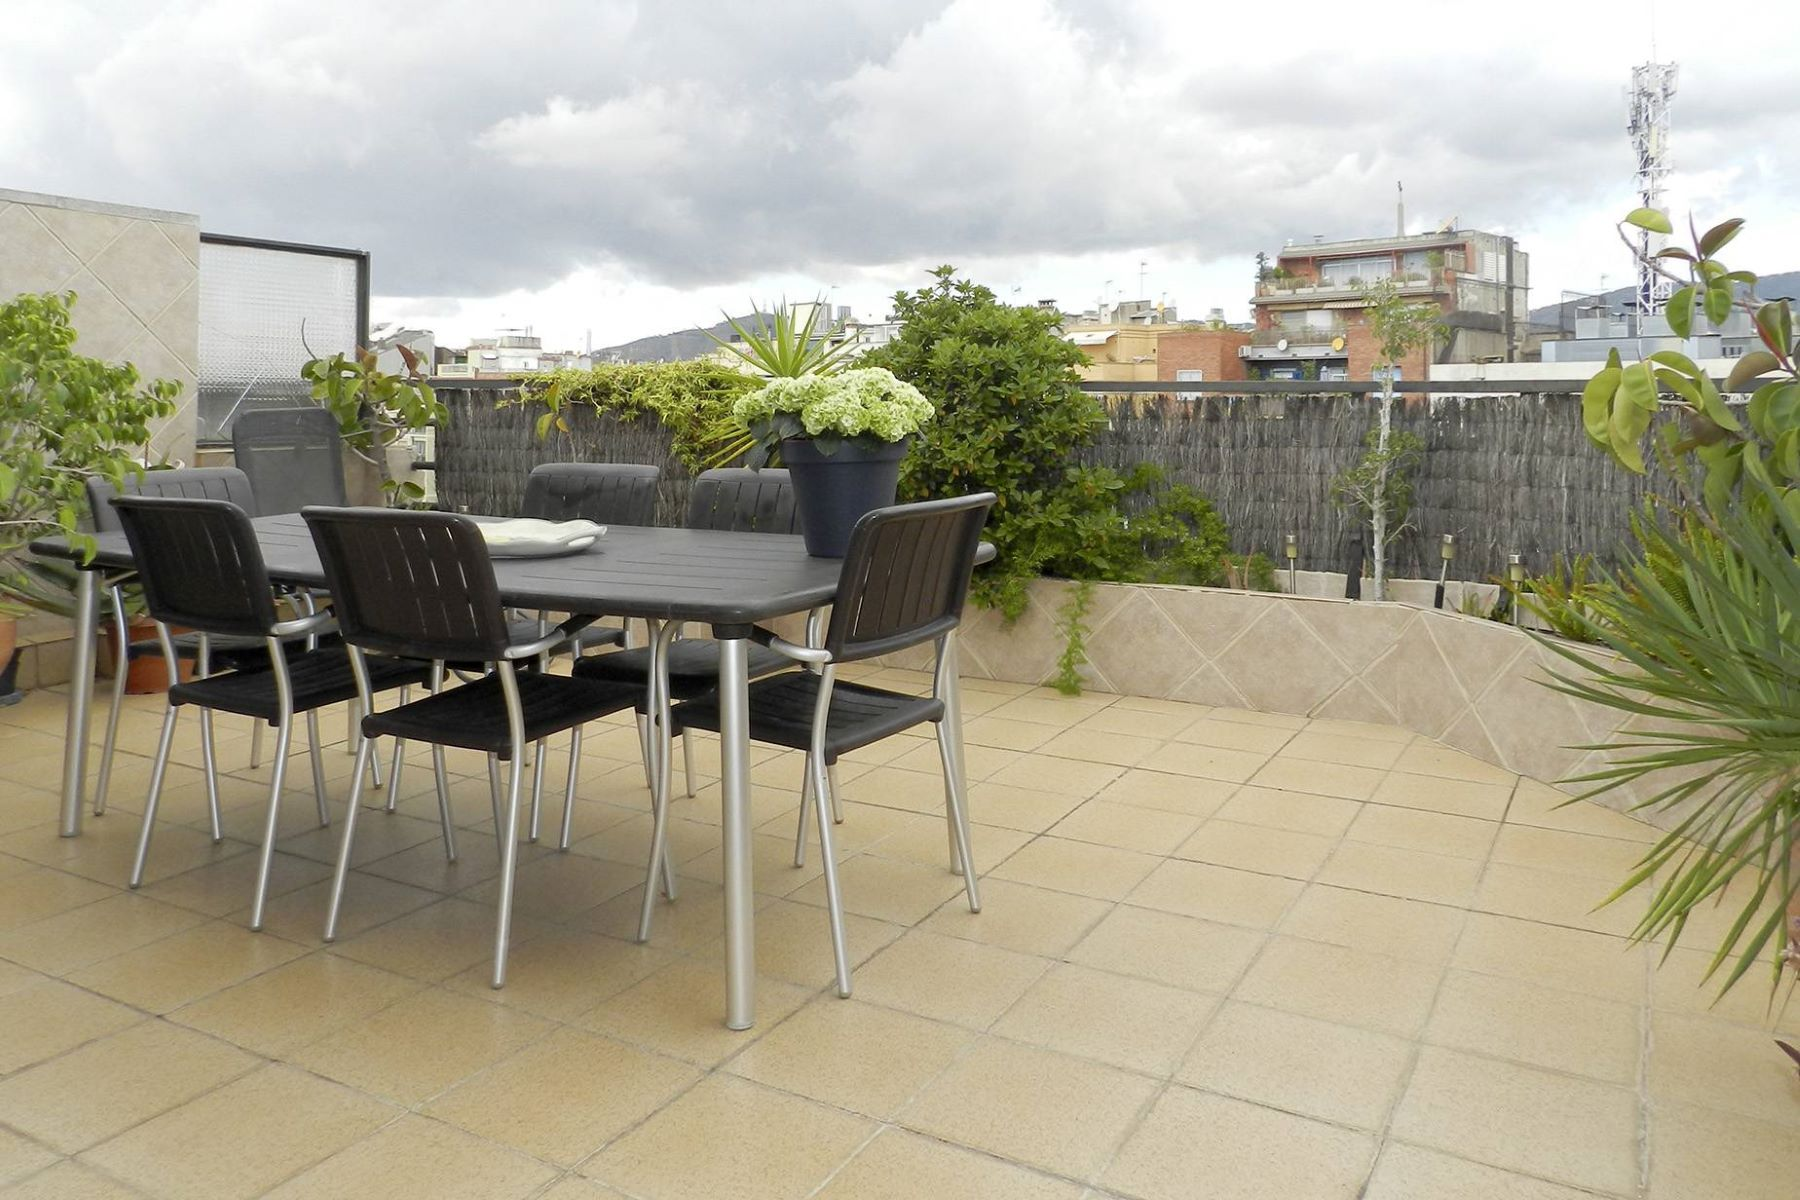 Квартира для того Продажа на A Penthouse for Sale with a Terrace in Eixample Barcelona City, Barcelona, 08007 Испания